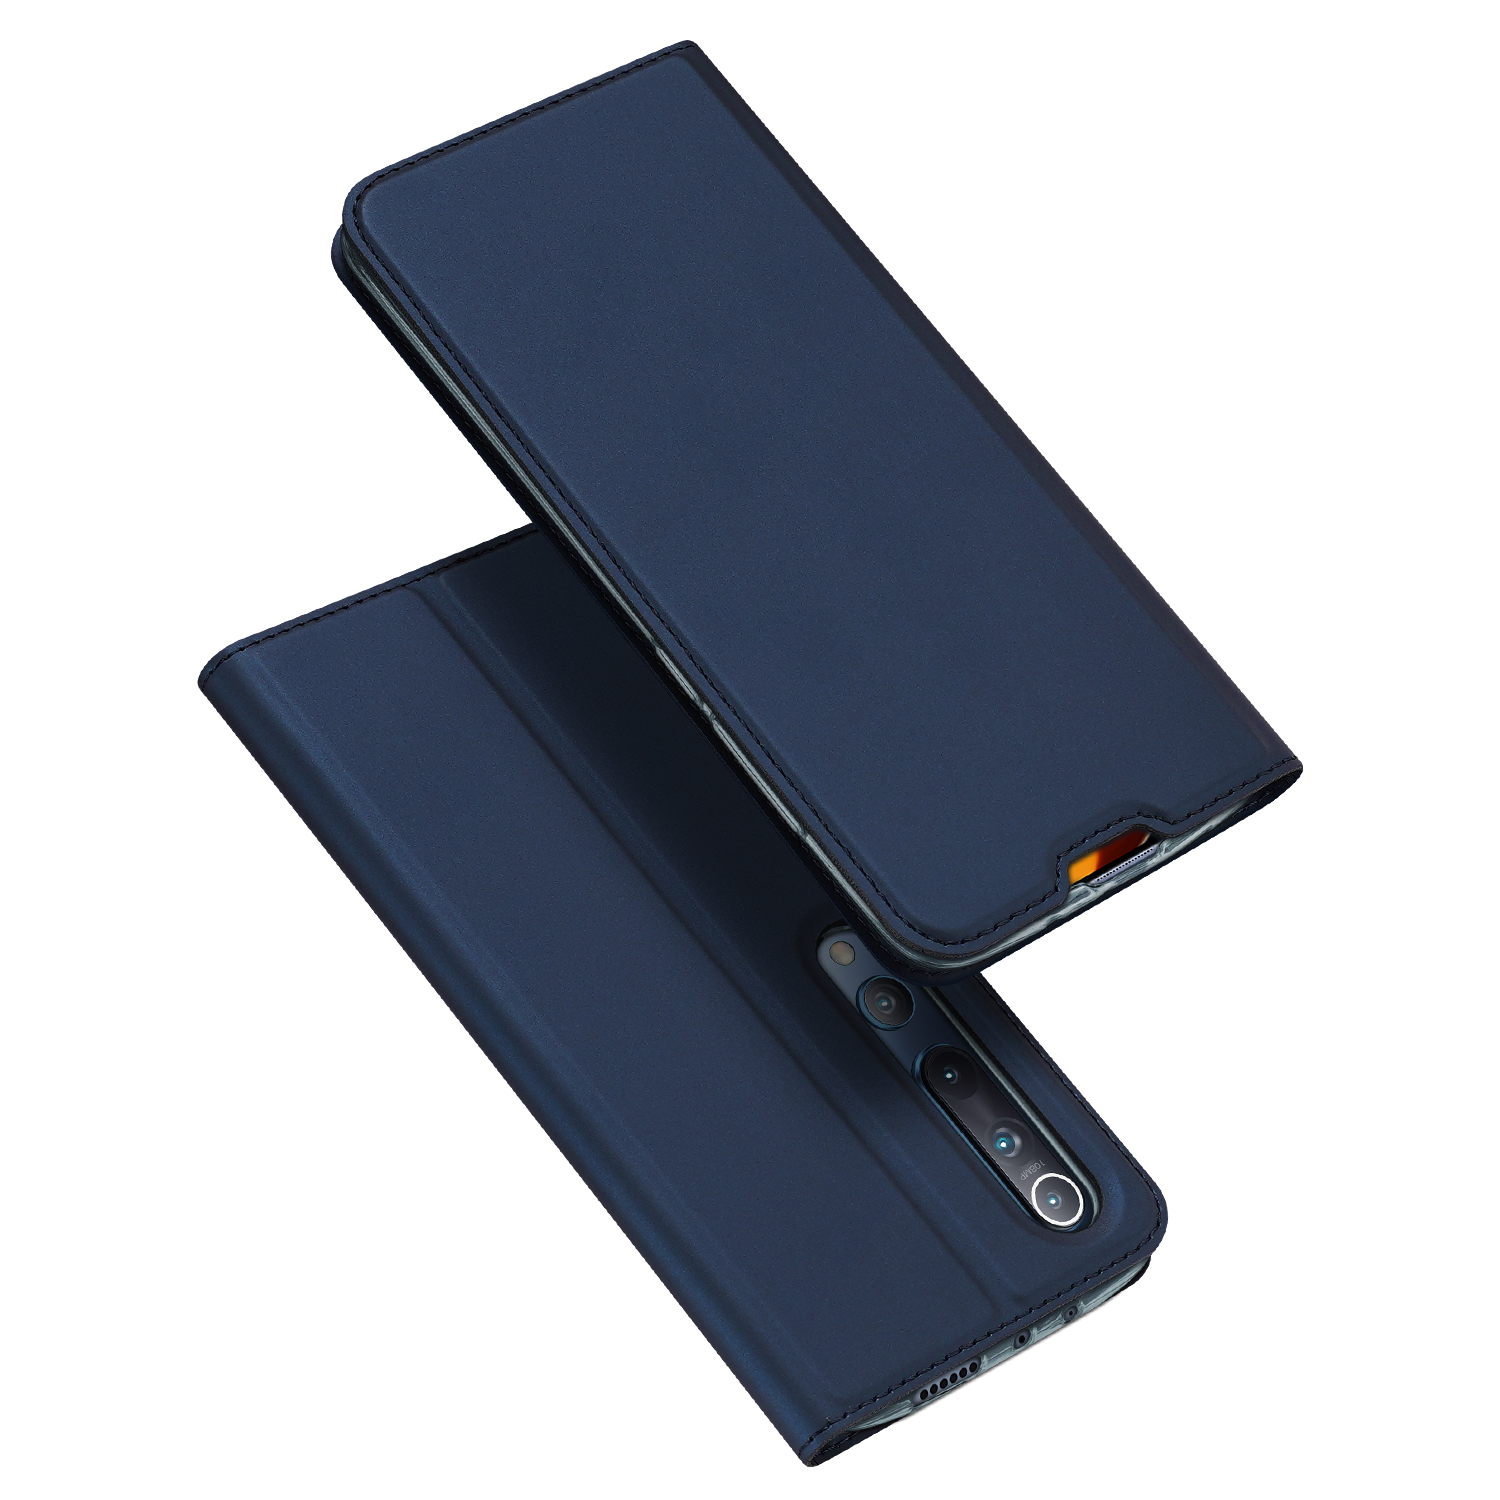 DUX DUCIS For XIAOMI 10/MI 10 Pro Fall Resistant Mobile Phone Cover Magnetic Leather Protective Case with Cards Slot Bracket Royal blue